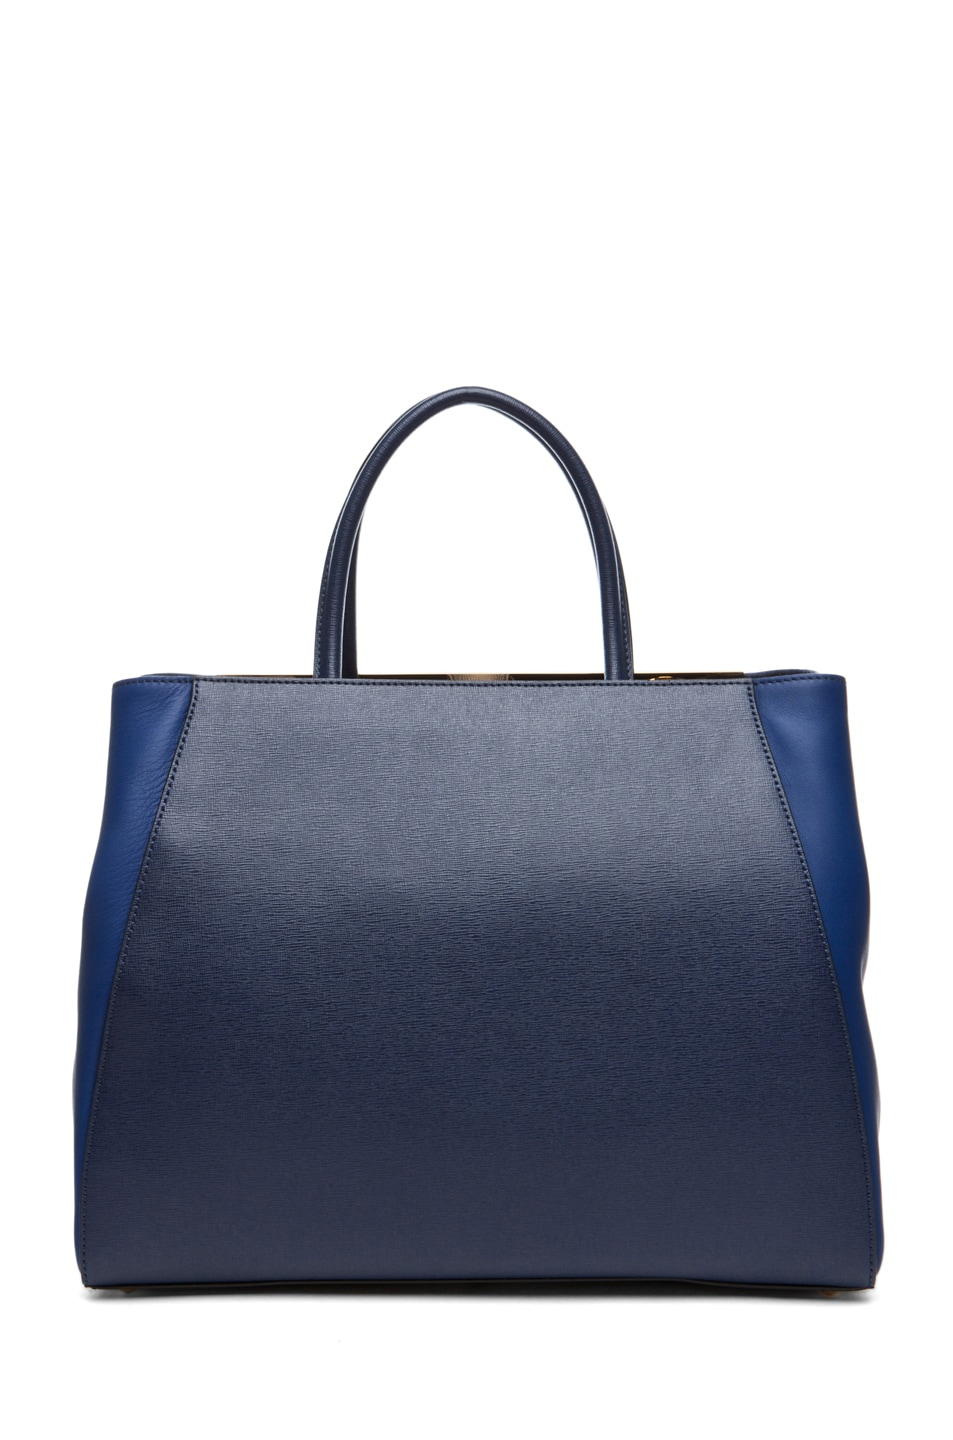 Image 2 of Fendi Handbag in Blue